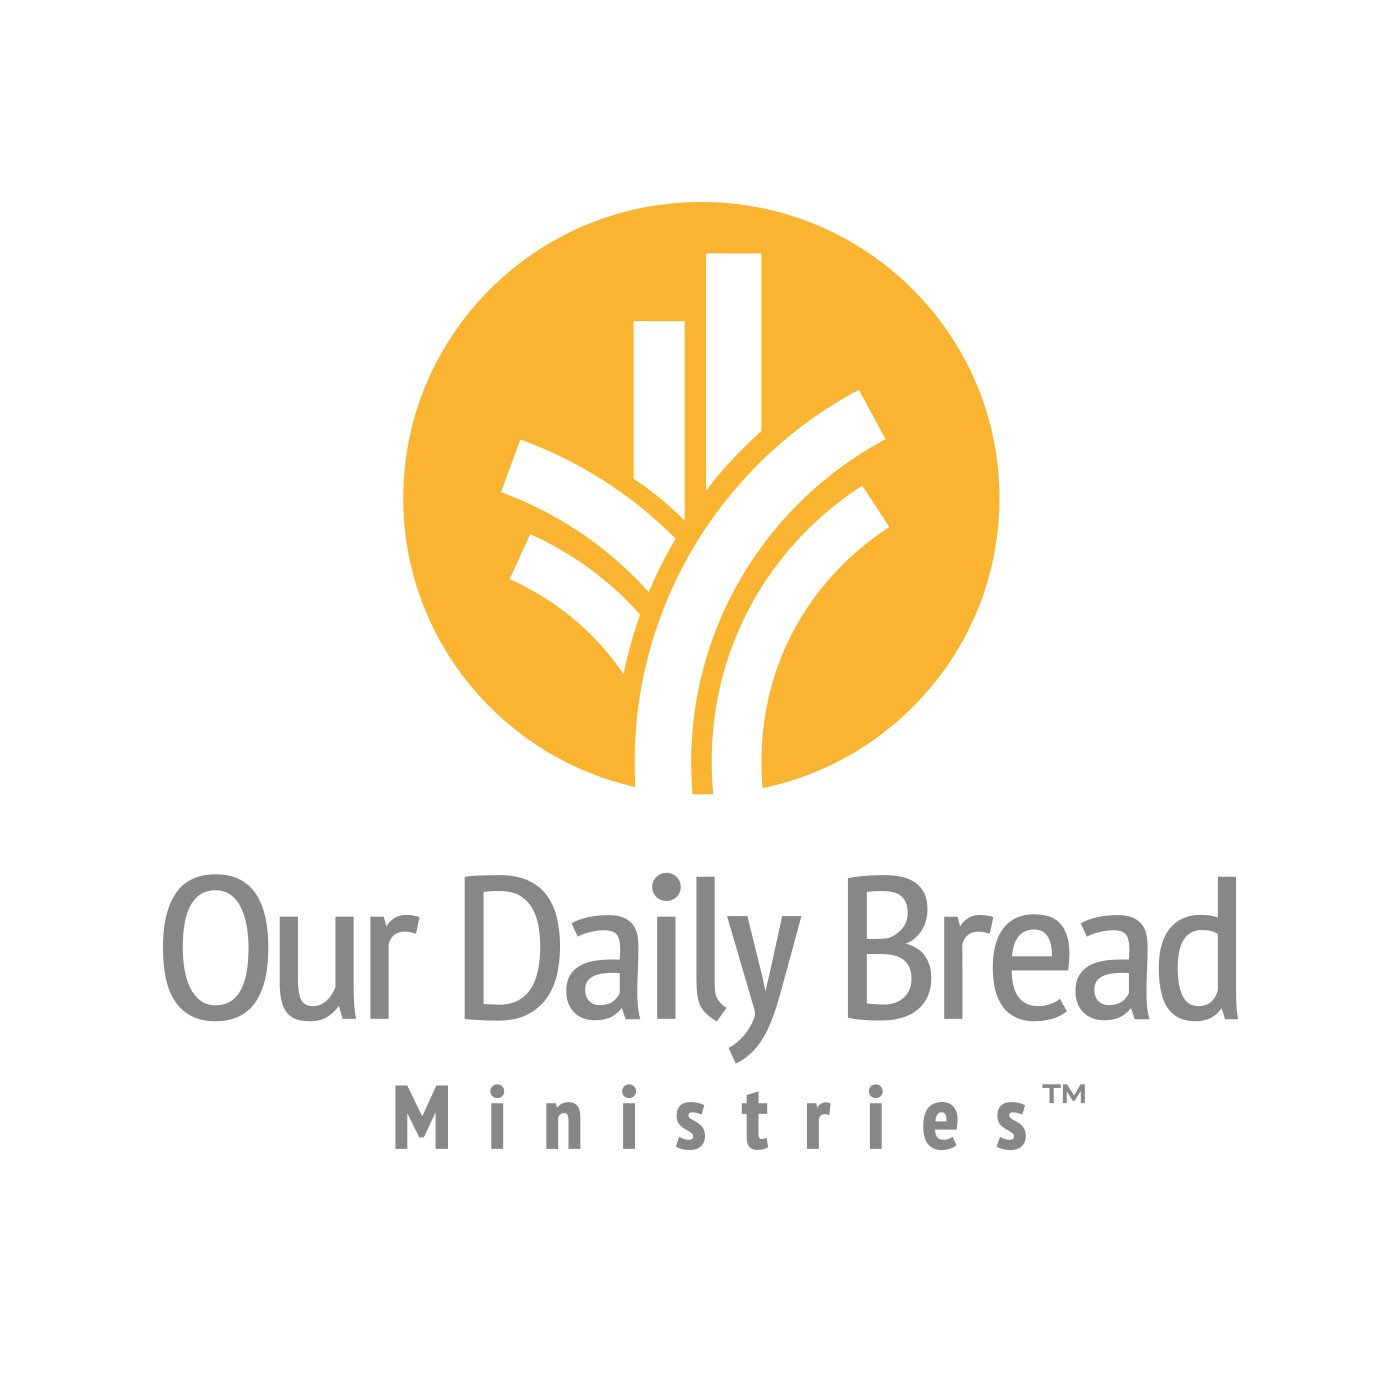 Our Daily Bread 3rd December 2020, Our Daily Bread 3rd December 2020 Devotional – The Privilege Of Prayer, Latest Nigeria News, Daily Devotionals & Celebrity Gossips - Chidispalace